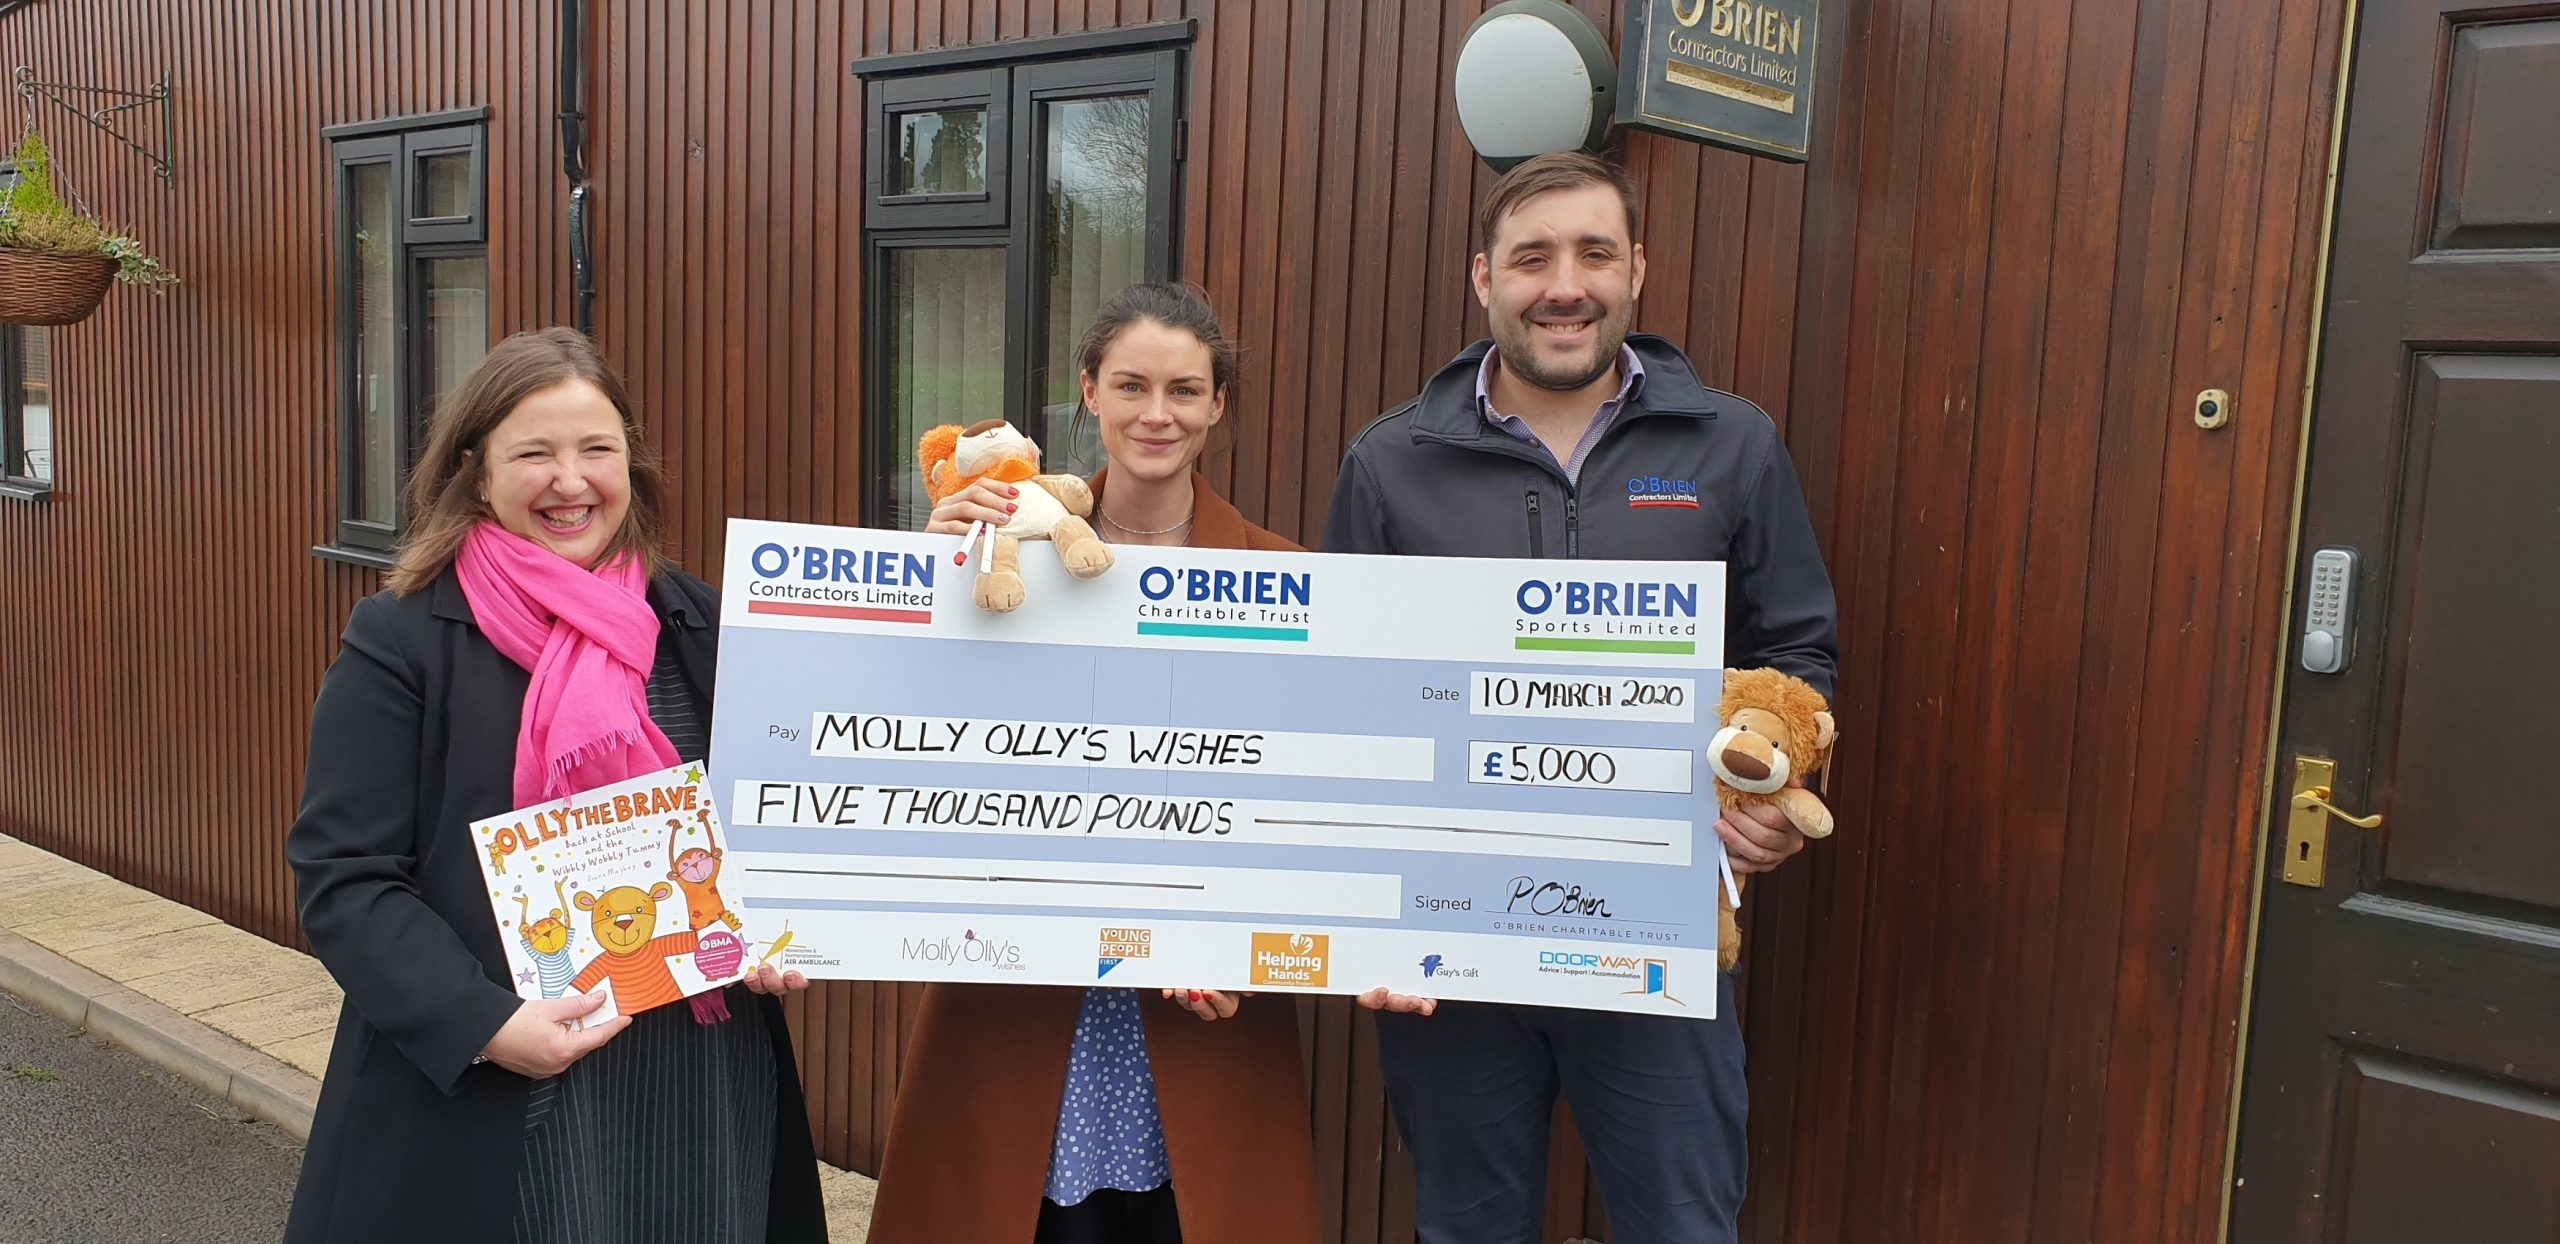 O'Brien Charitable Trust Presents Molly Olly's Wishes with £5,000 Cheque